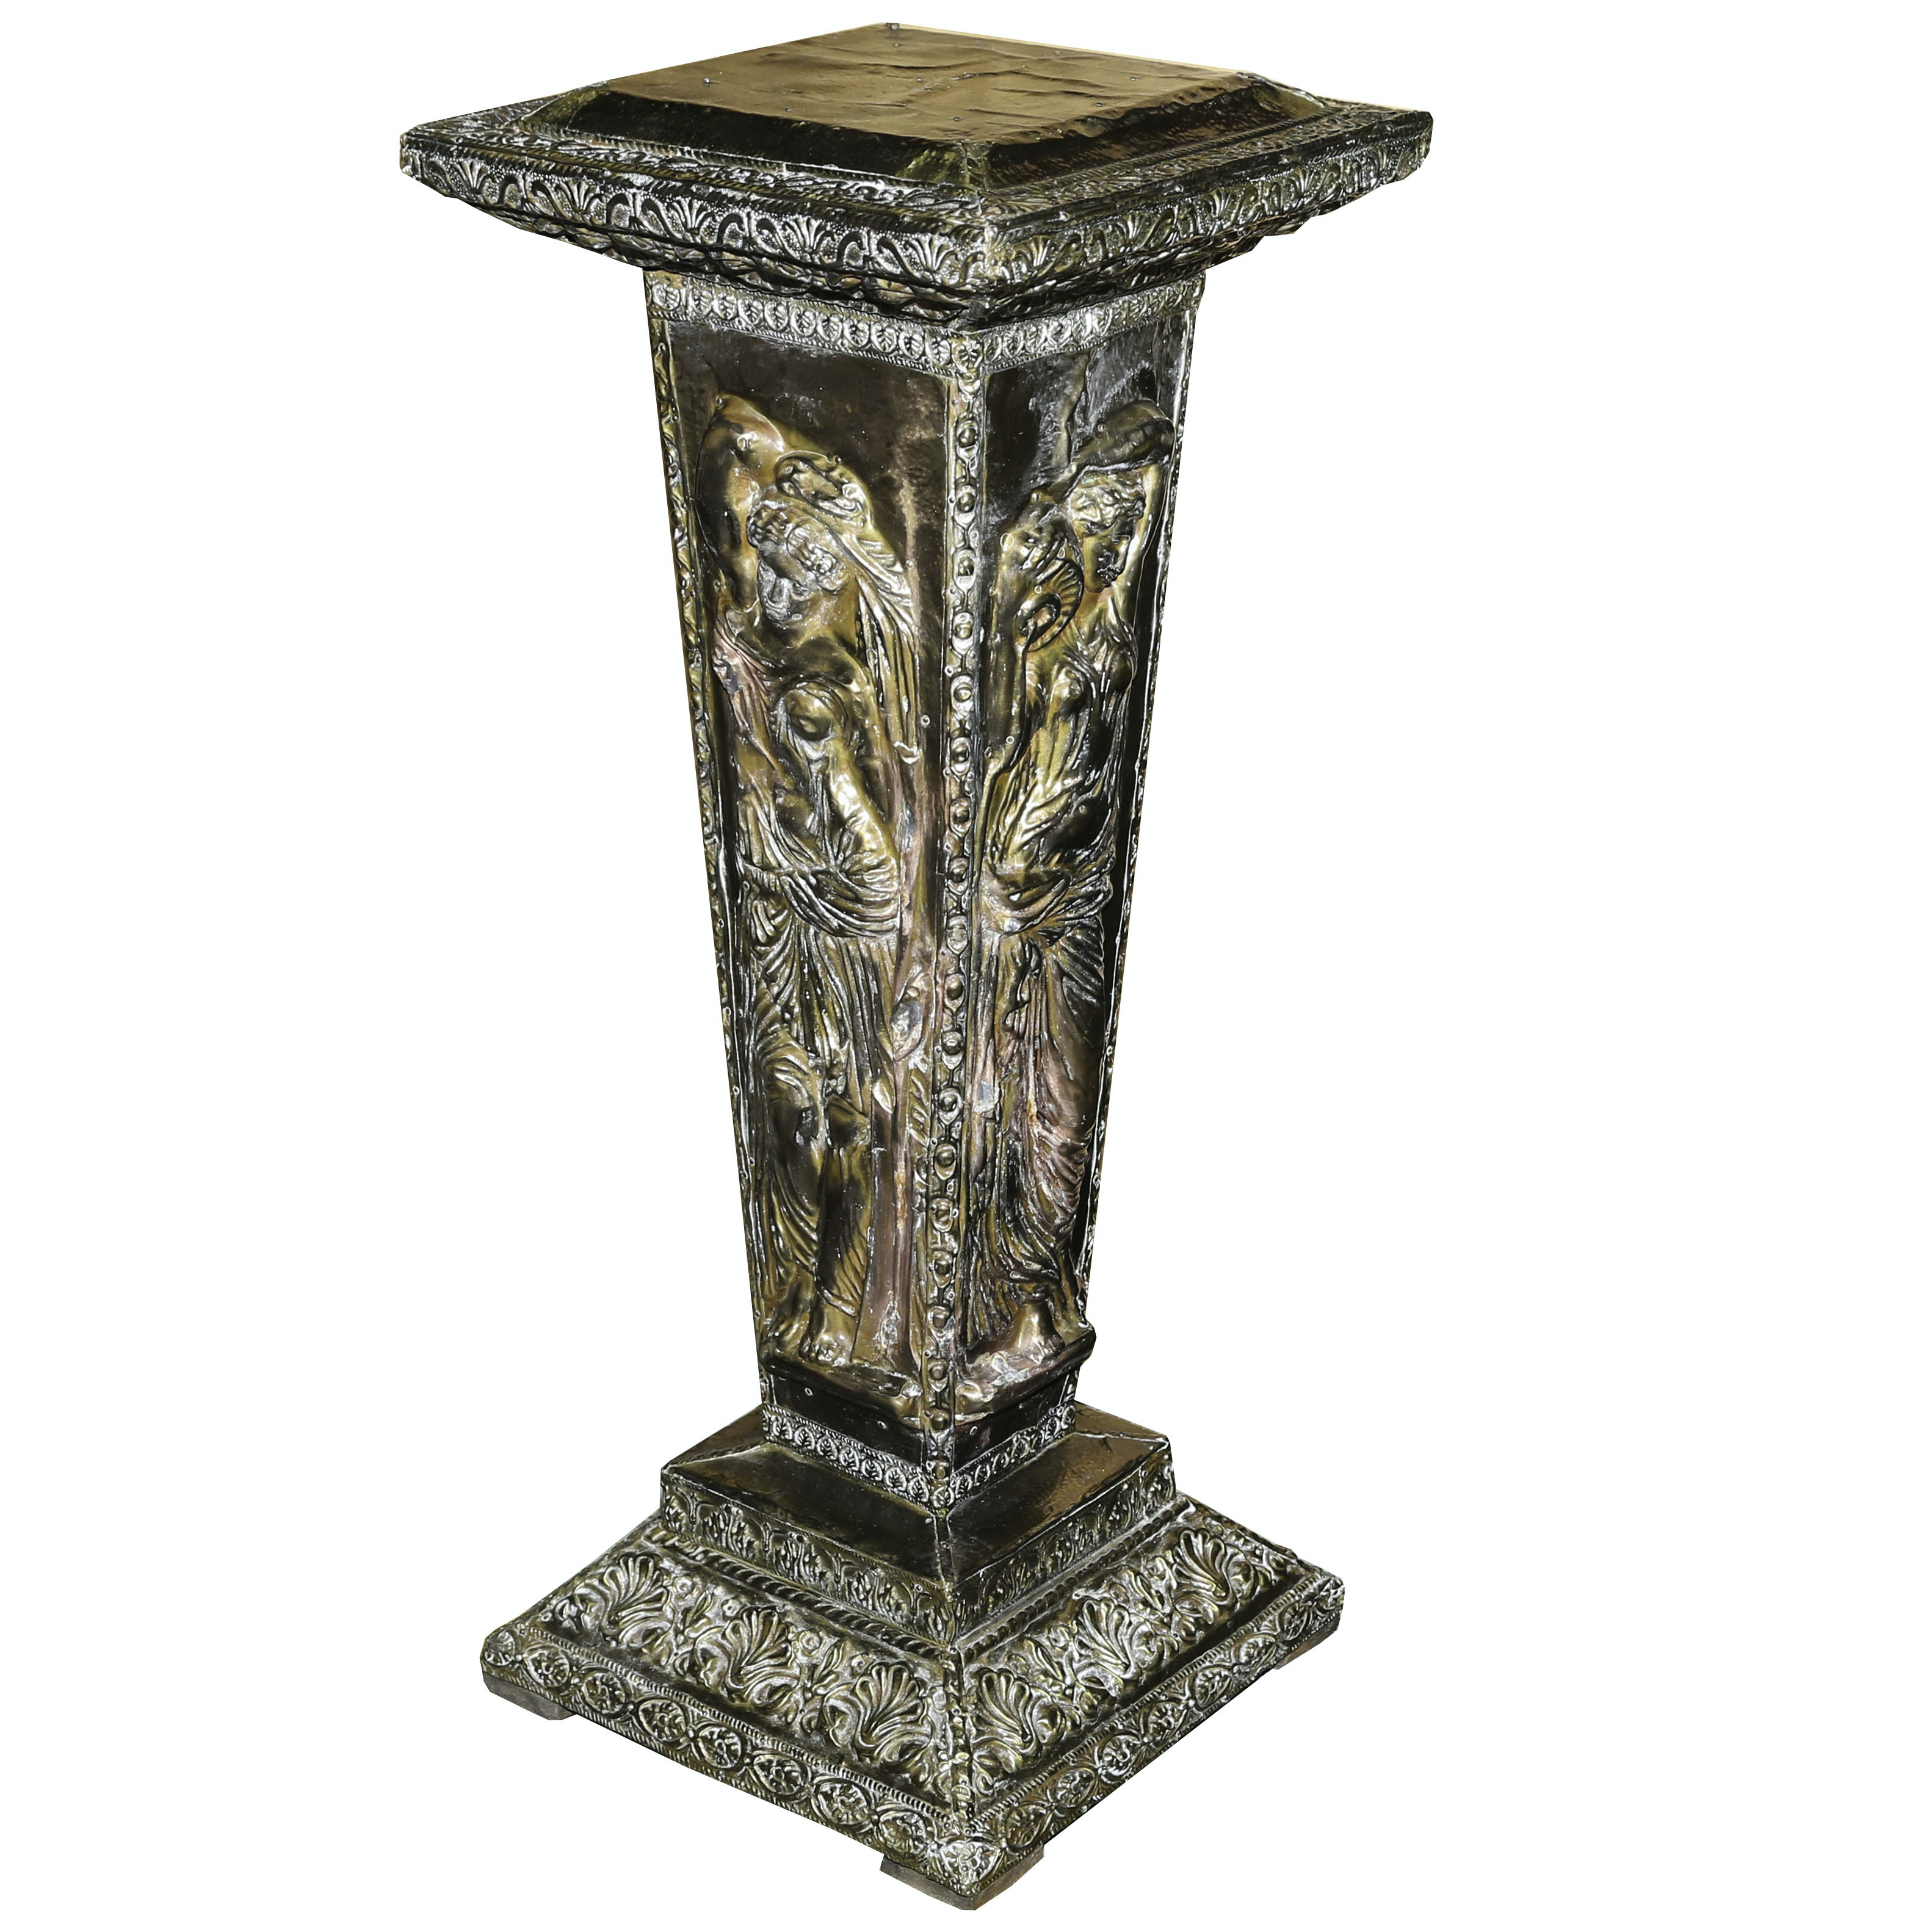 Brass and Copper Clad Wooden Pedestal